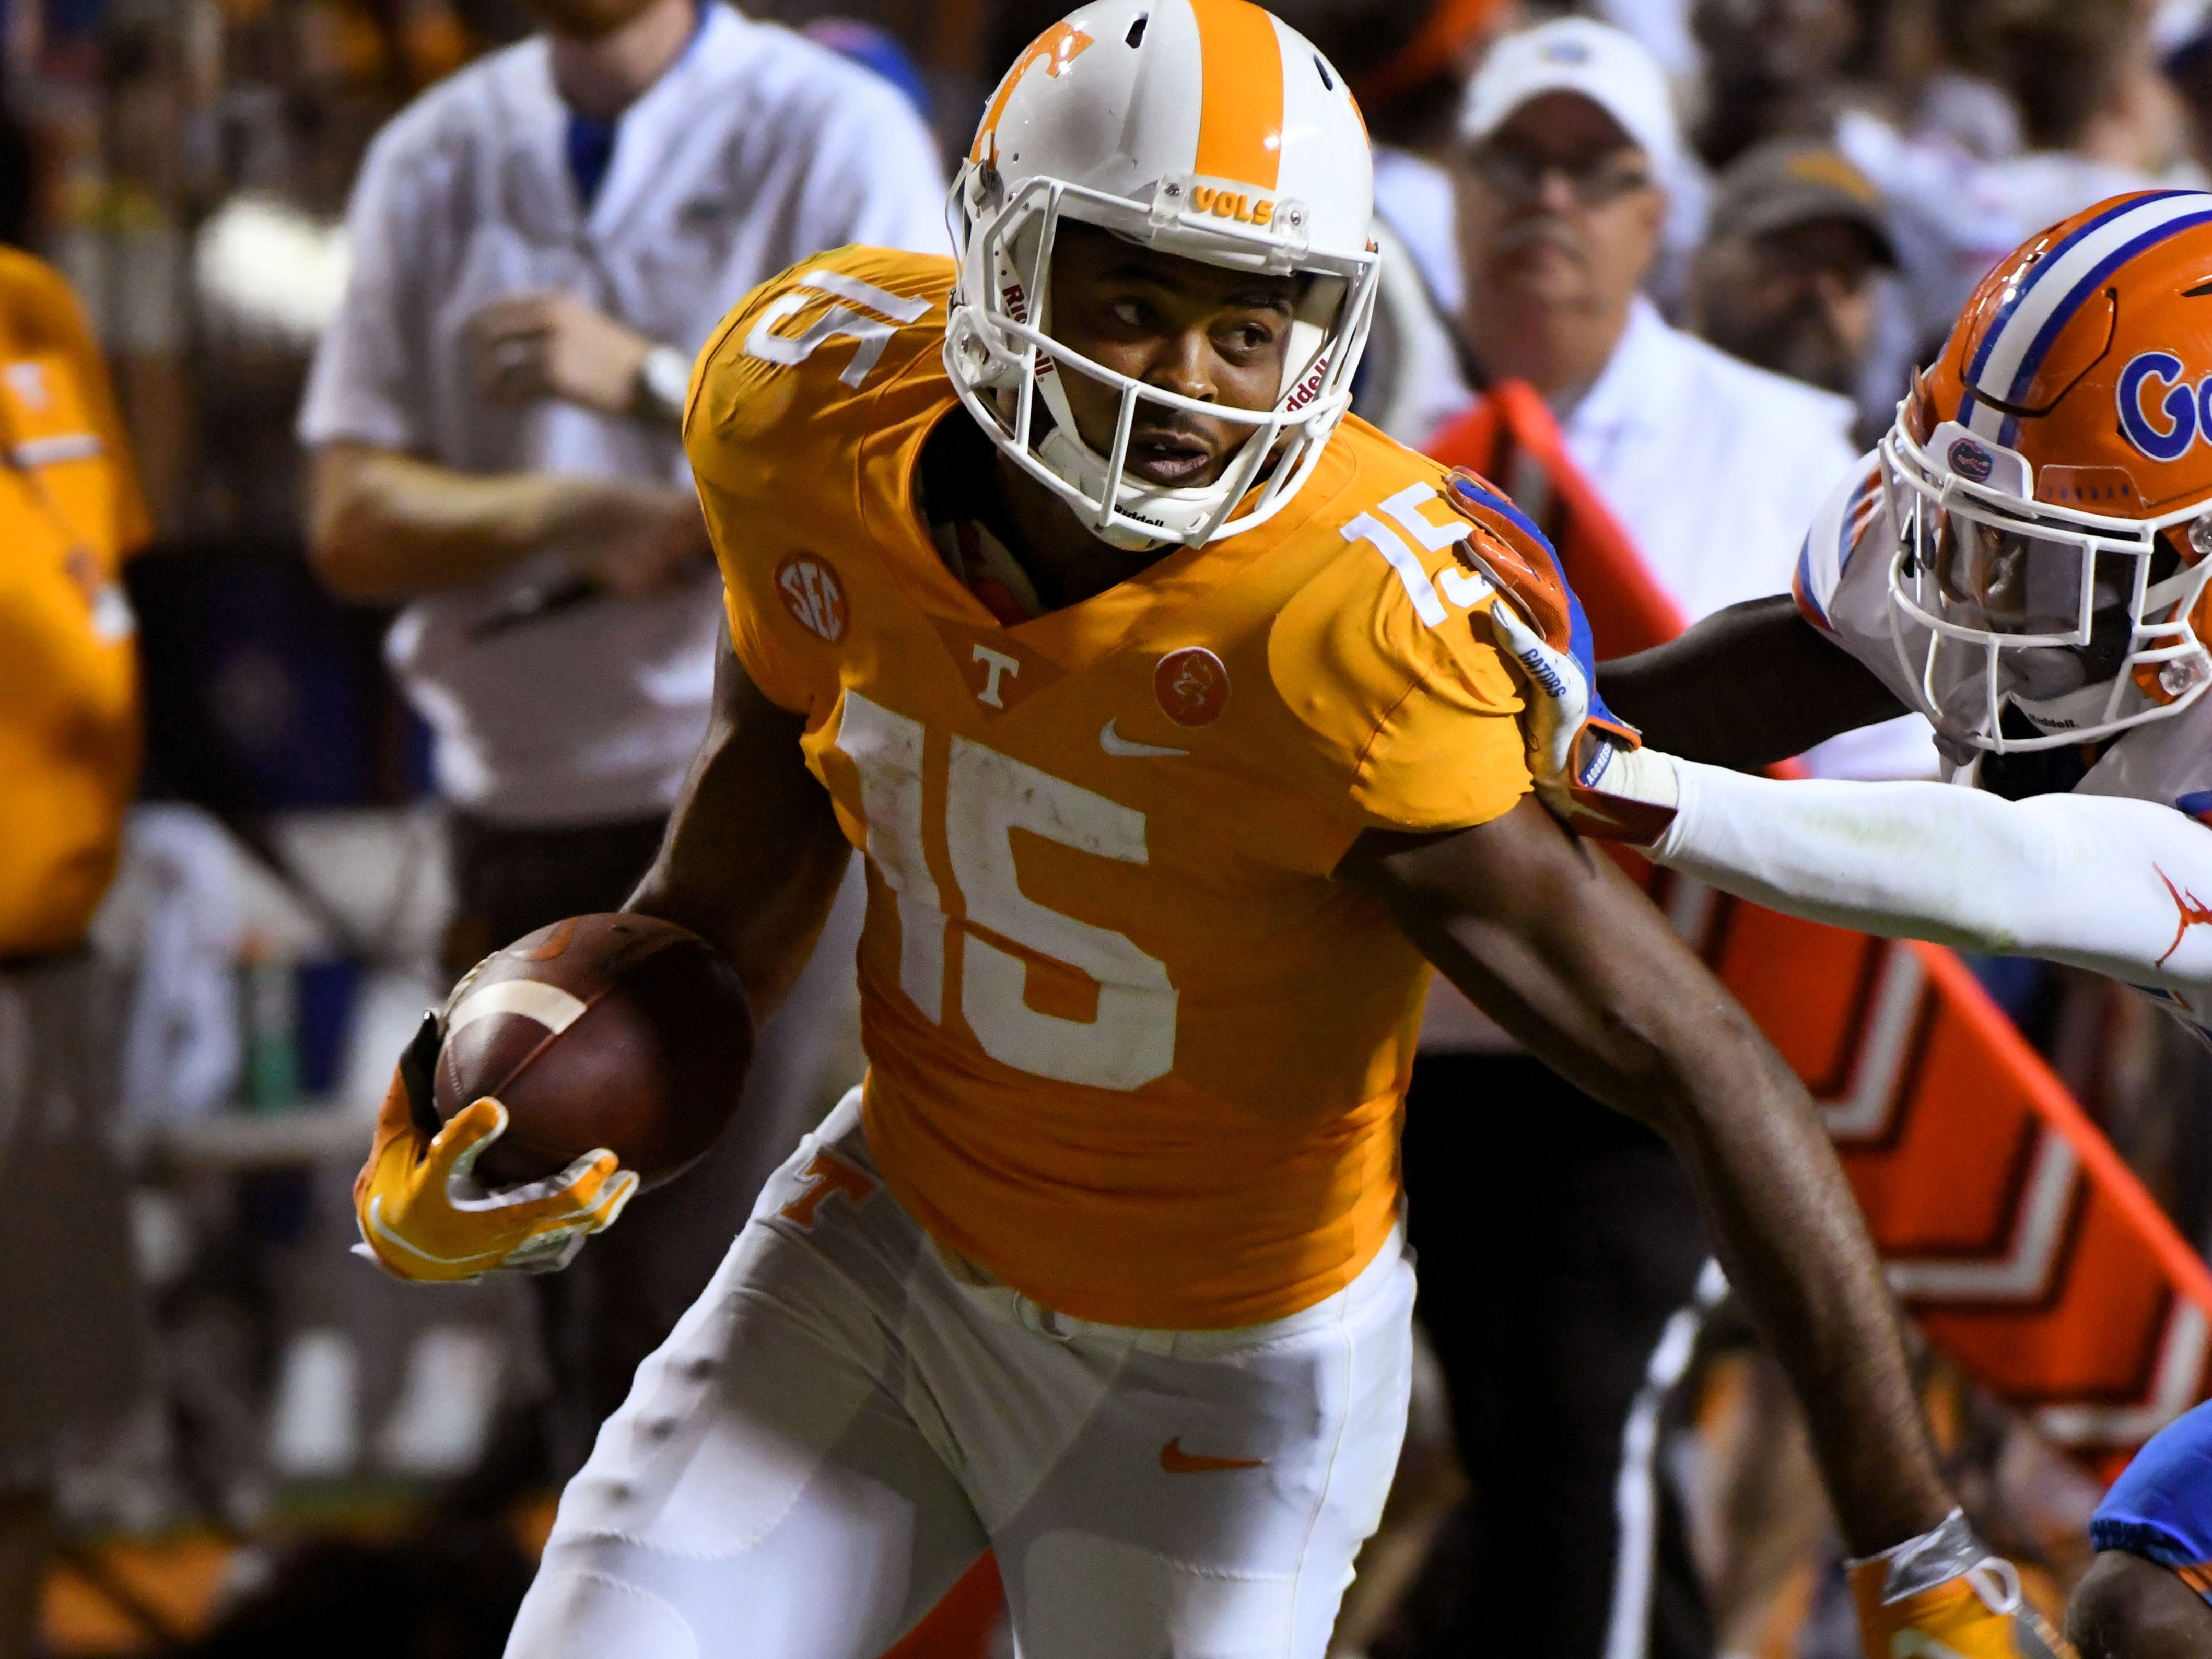 Tennessee wide receiver Jauan Jennings (15) scores during second half of their 47-21 loss to Florida in Neyland Stadium Saturday, September 22, 2018 in Knoxville, Tenn.